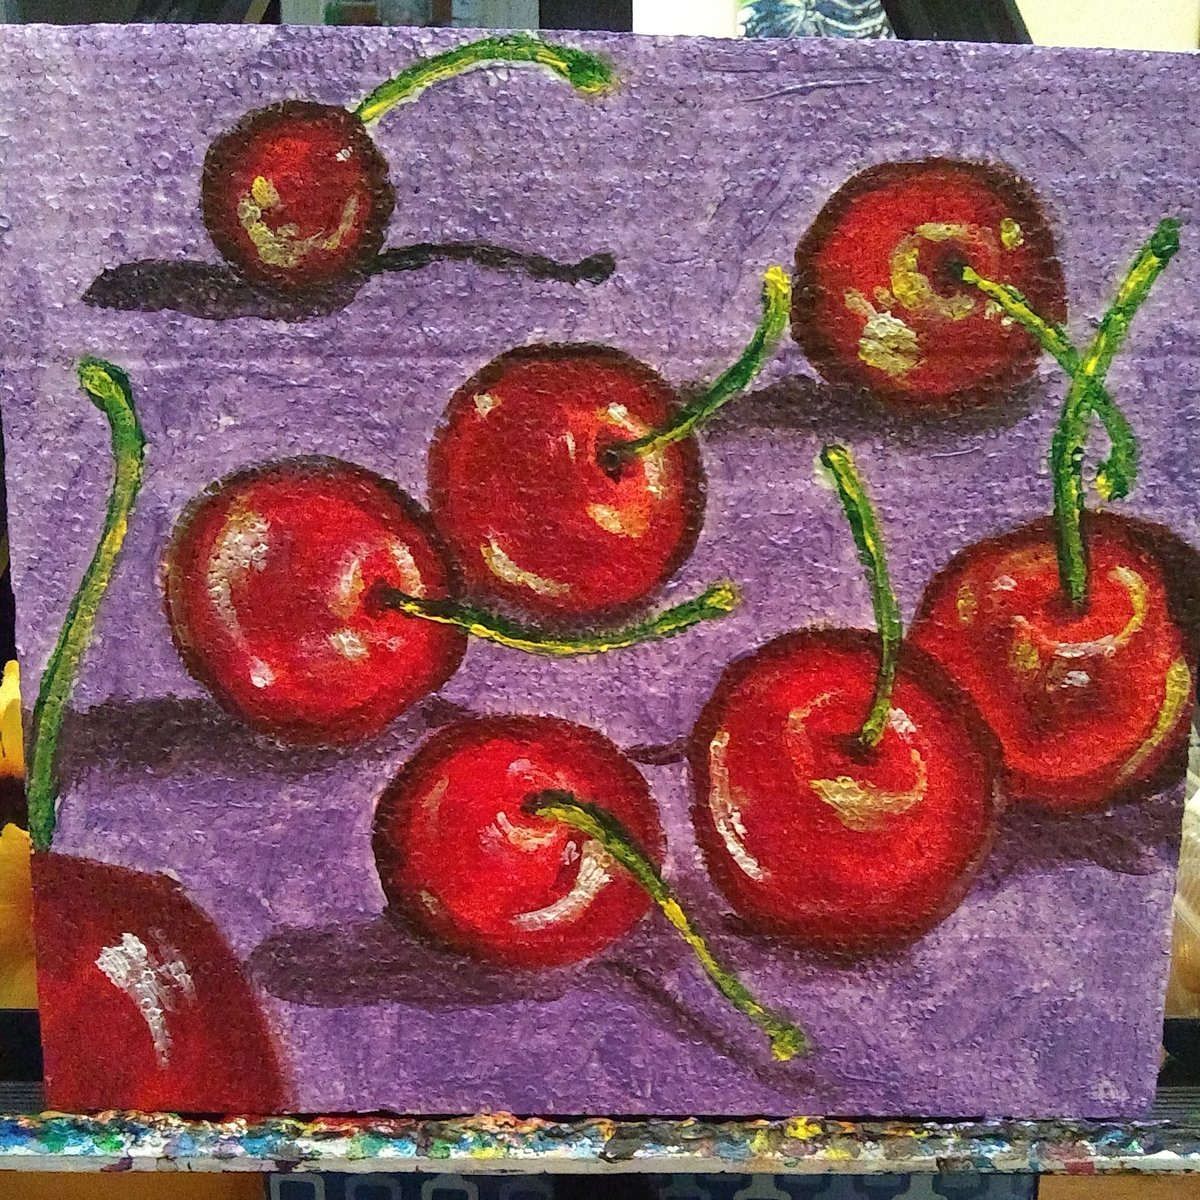 """#paintings #acrylicpainting #cherries #cherryart #cherrypaintings #fruitart #fruitpaintings  Created this little painting of some cherries today. Love how it turned out.  """"Cherries"""" Acrylic paint on recycled foam.pic.twitter.com/yVxVZxy37d"""